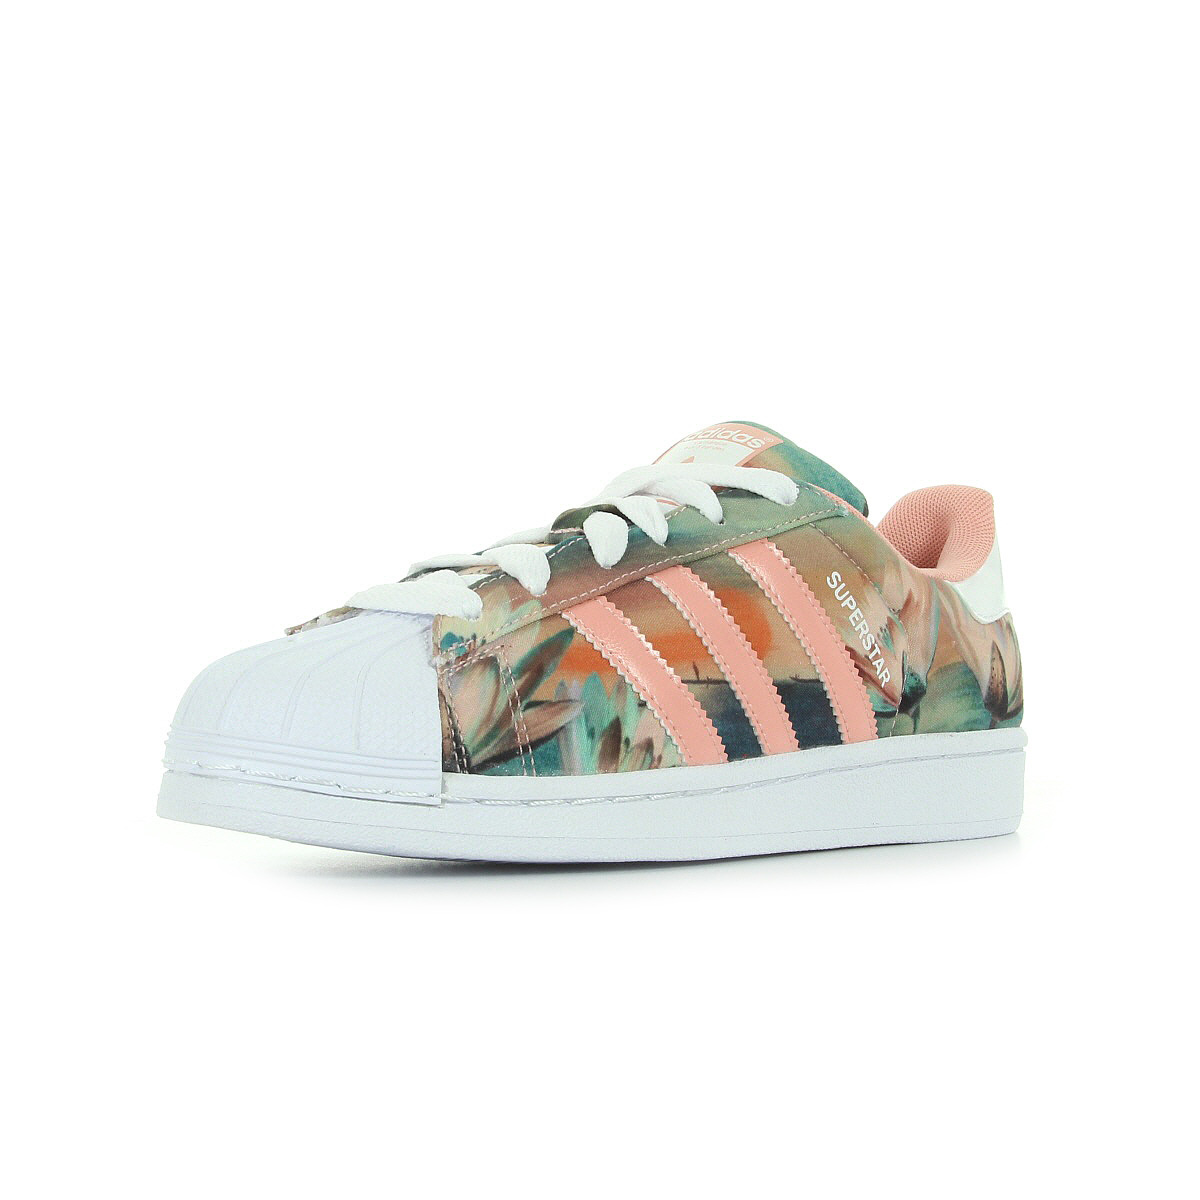 chaussures baskets adidas femme superstar w taille rose p le synth tique ebay. Black Bedroom Furniture Sets. Home Design Ideas